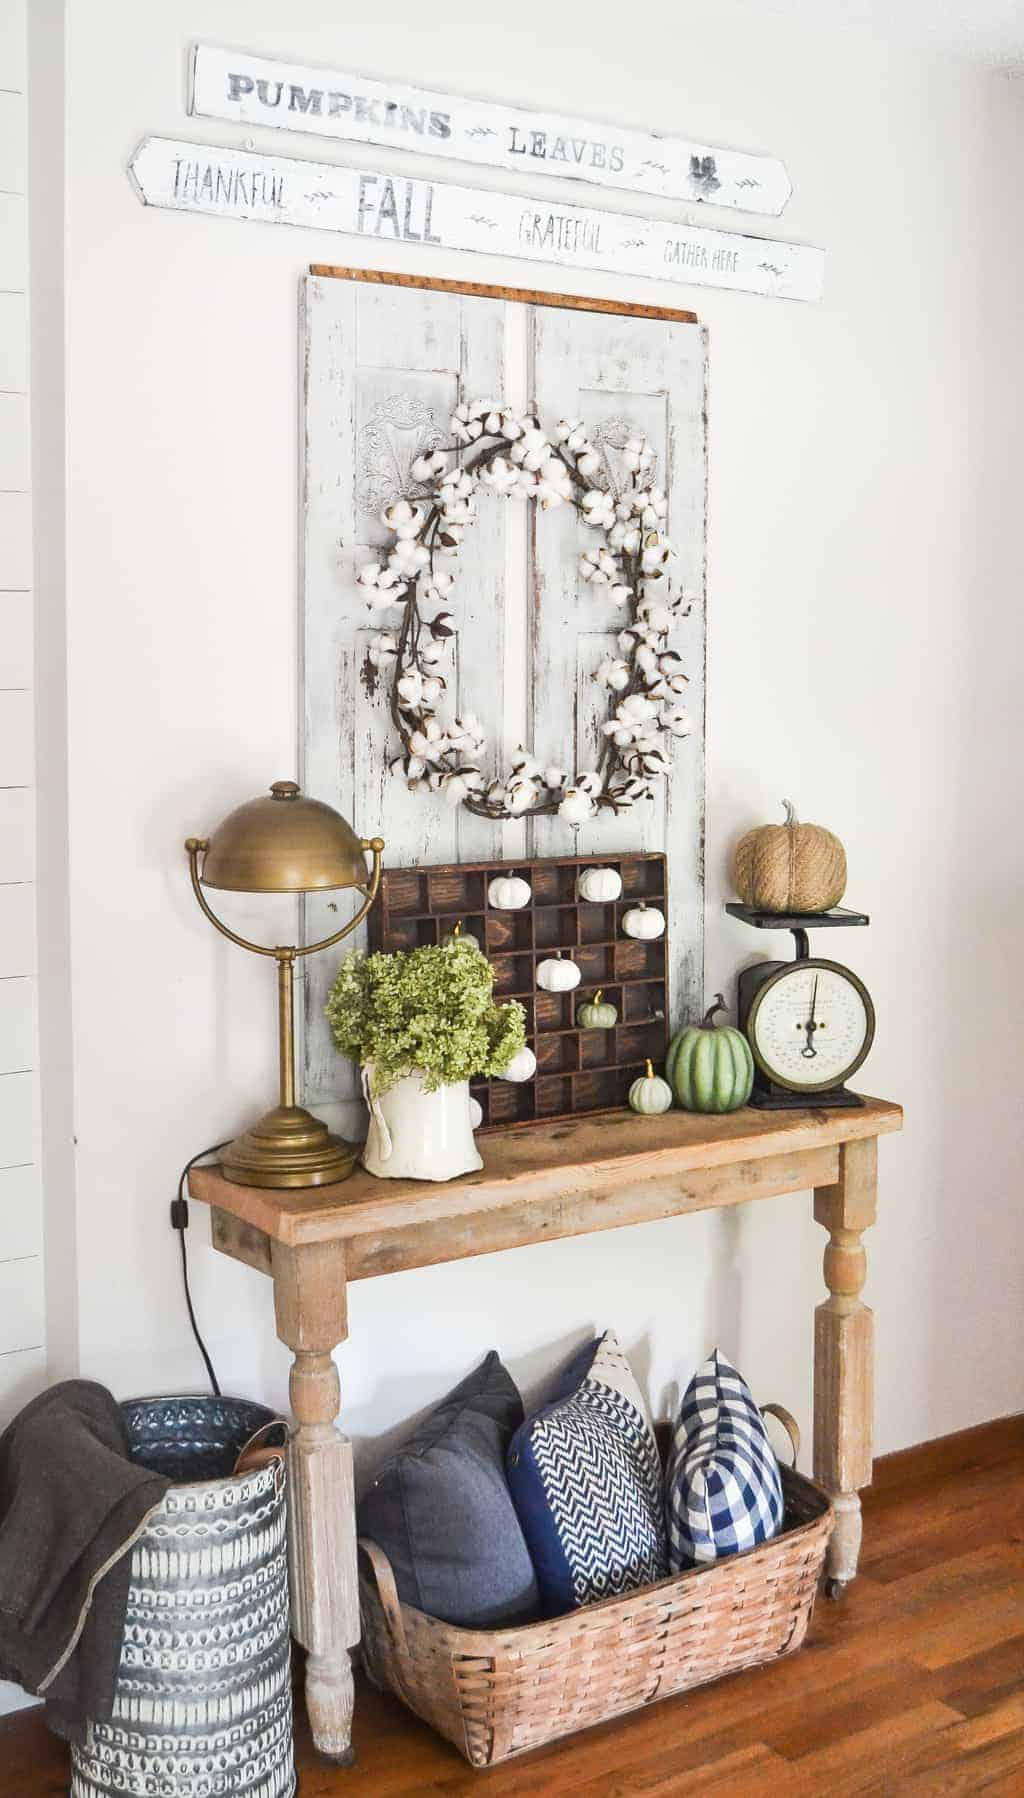 Neutral Fall Home Tour With Kirklands - My Creative Days